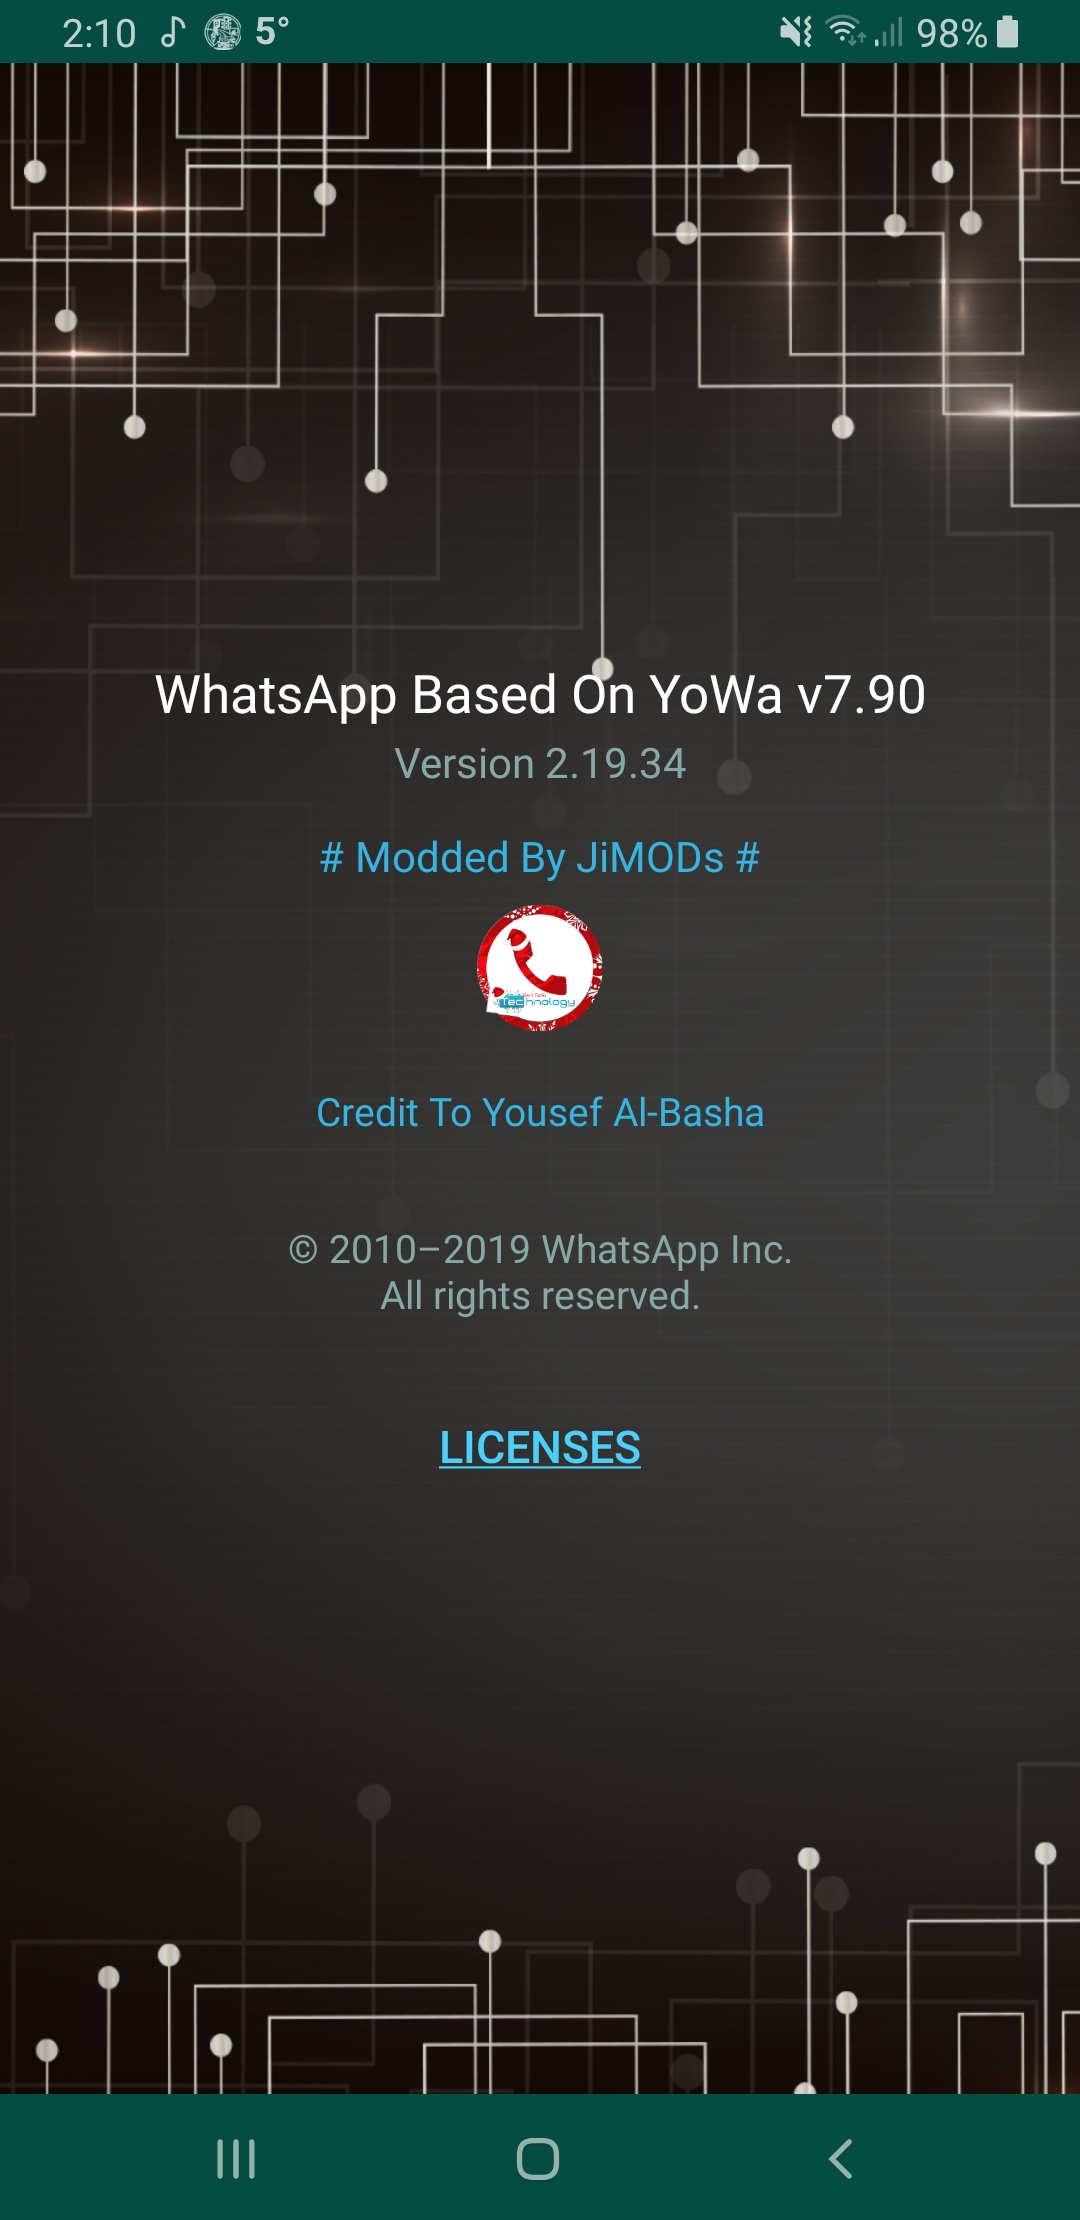 WhatsApp Plus JiMODs v7.90 Jimtechs Editions